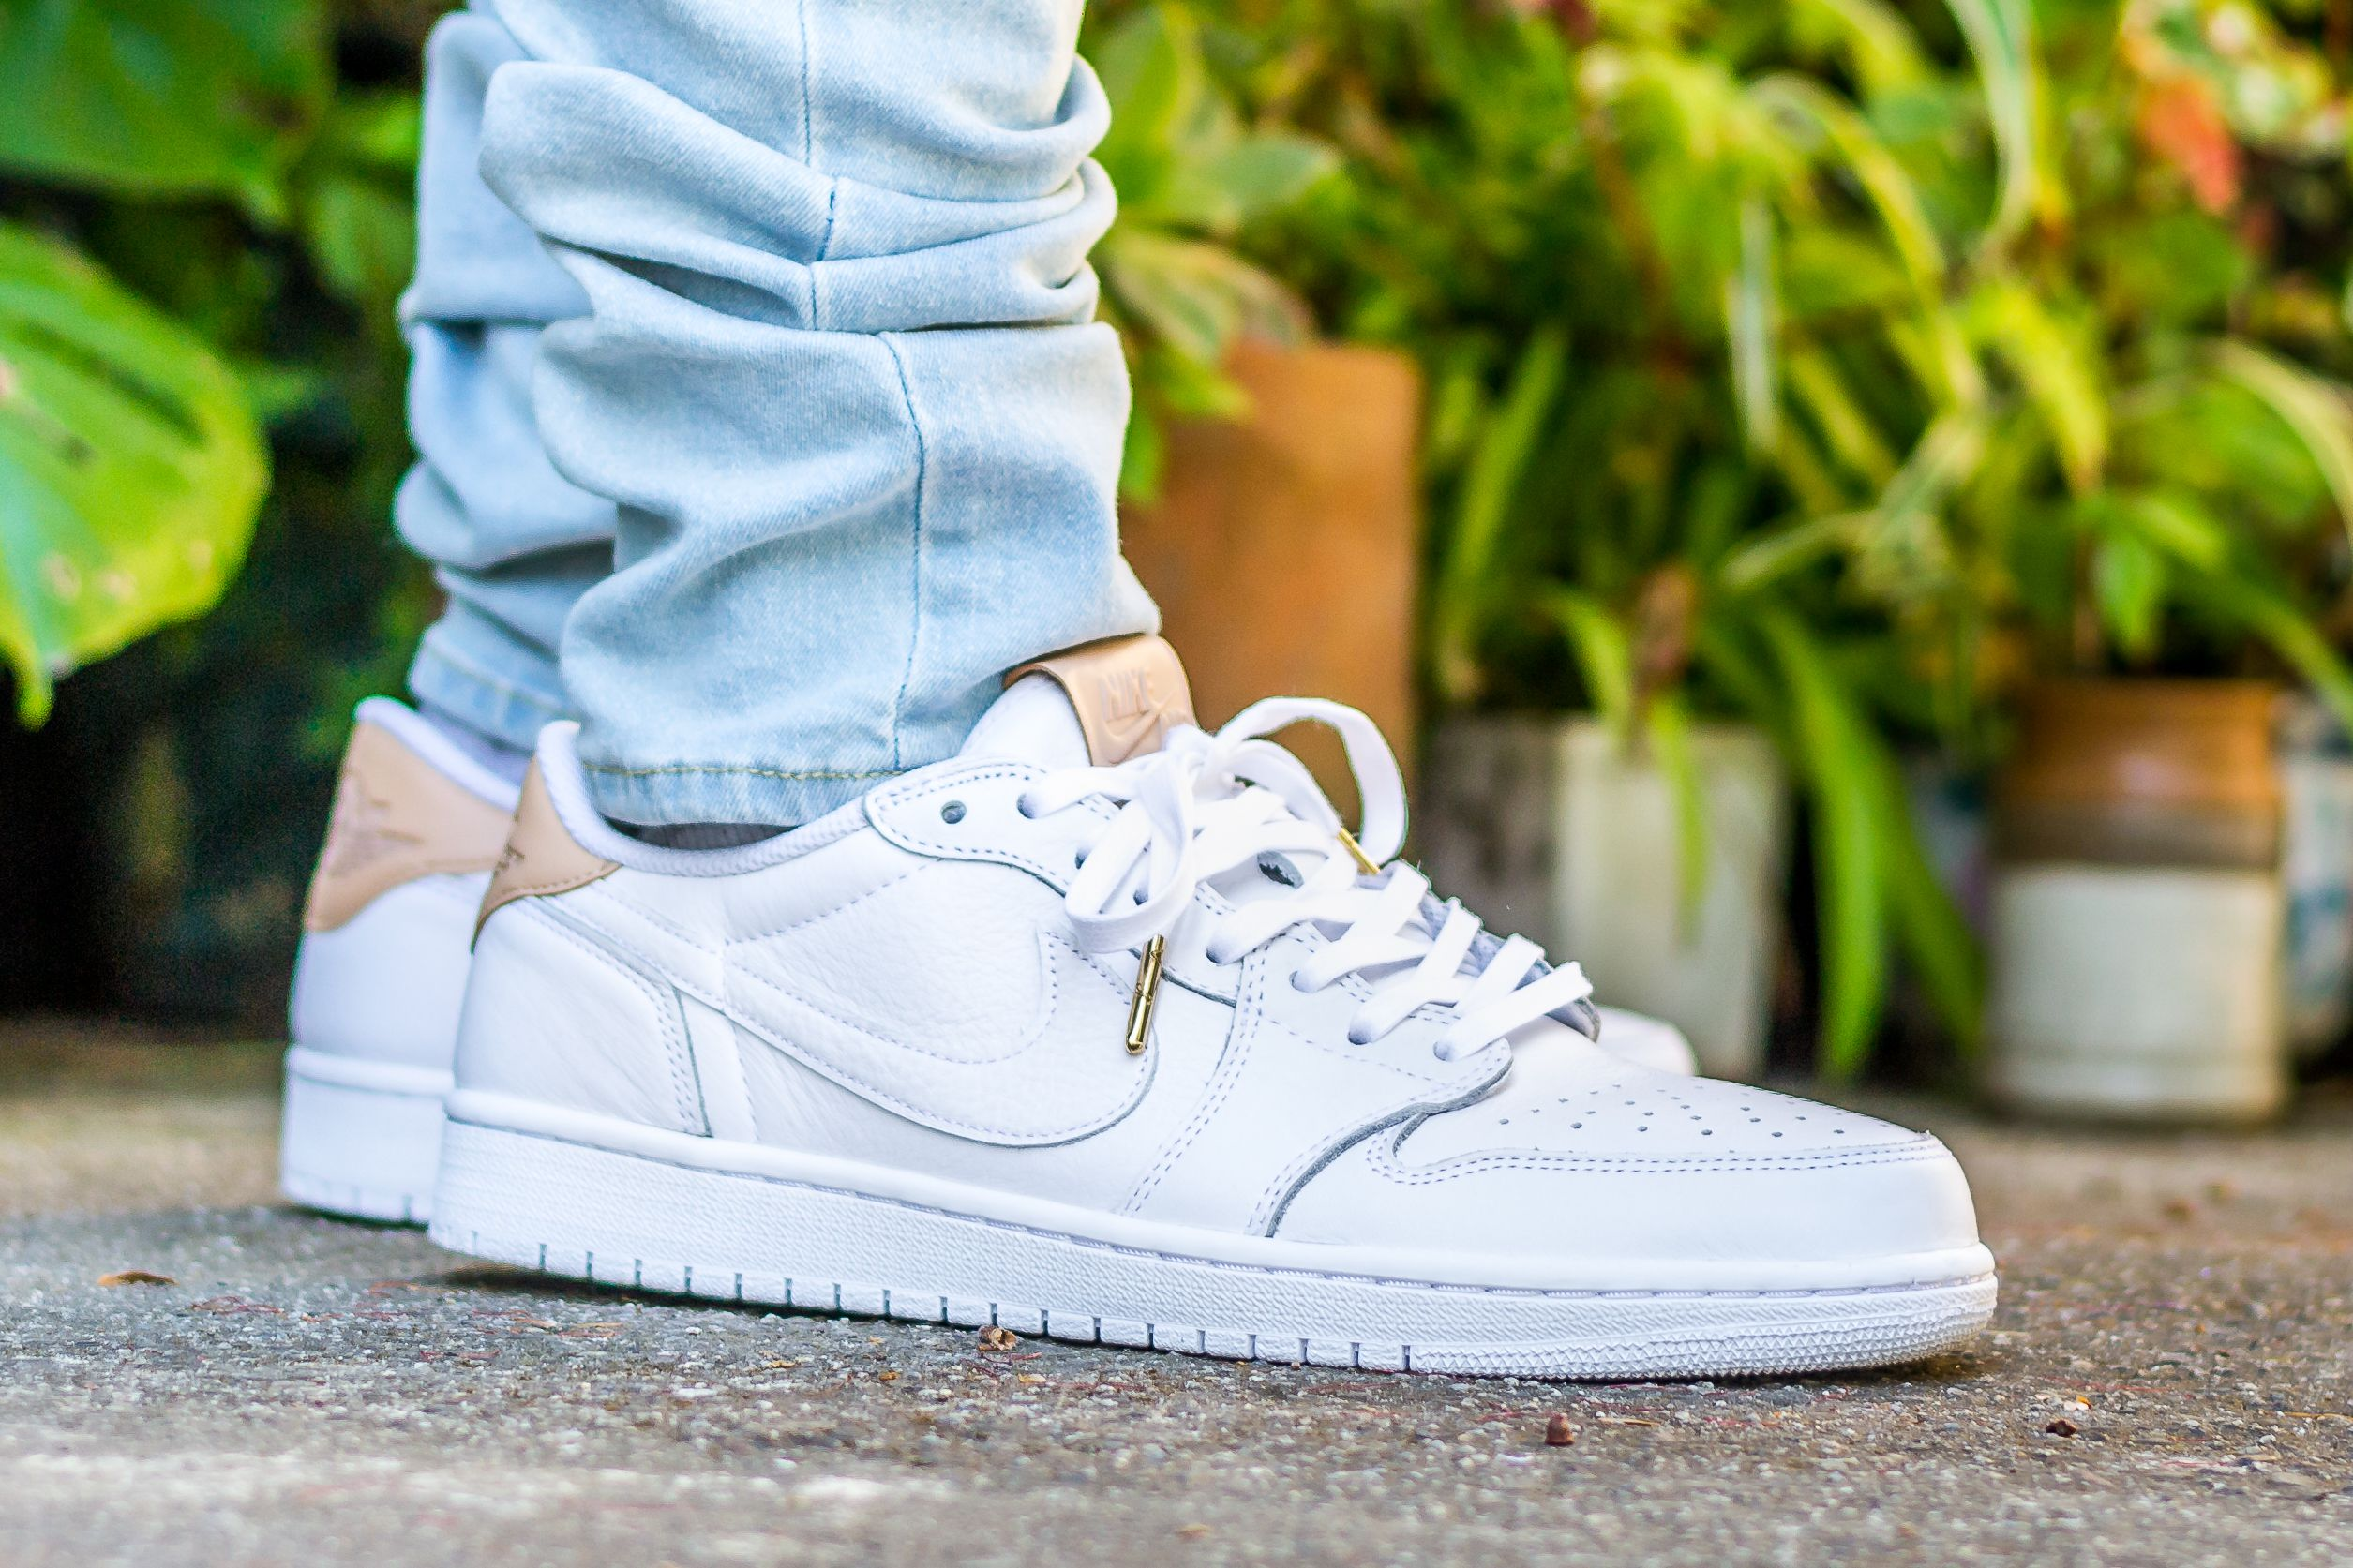 detailed look 5bbf3 71381 Click to see my video review of the Air Jordan 1 Low OG Premium White    Vachetta Tan and find out where to buy a pair yourself